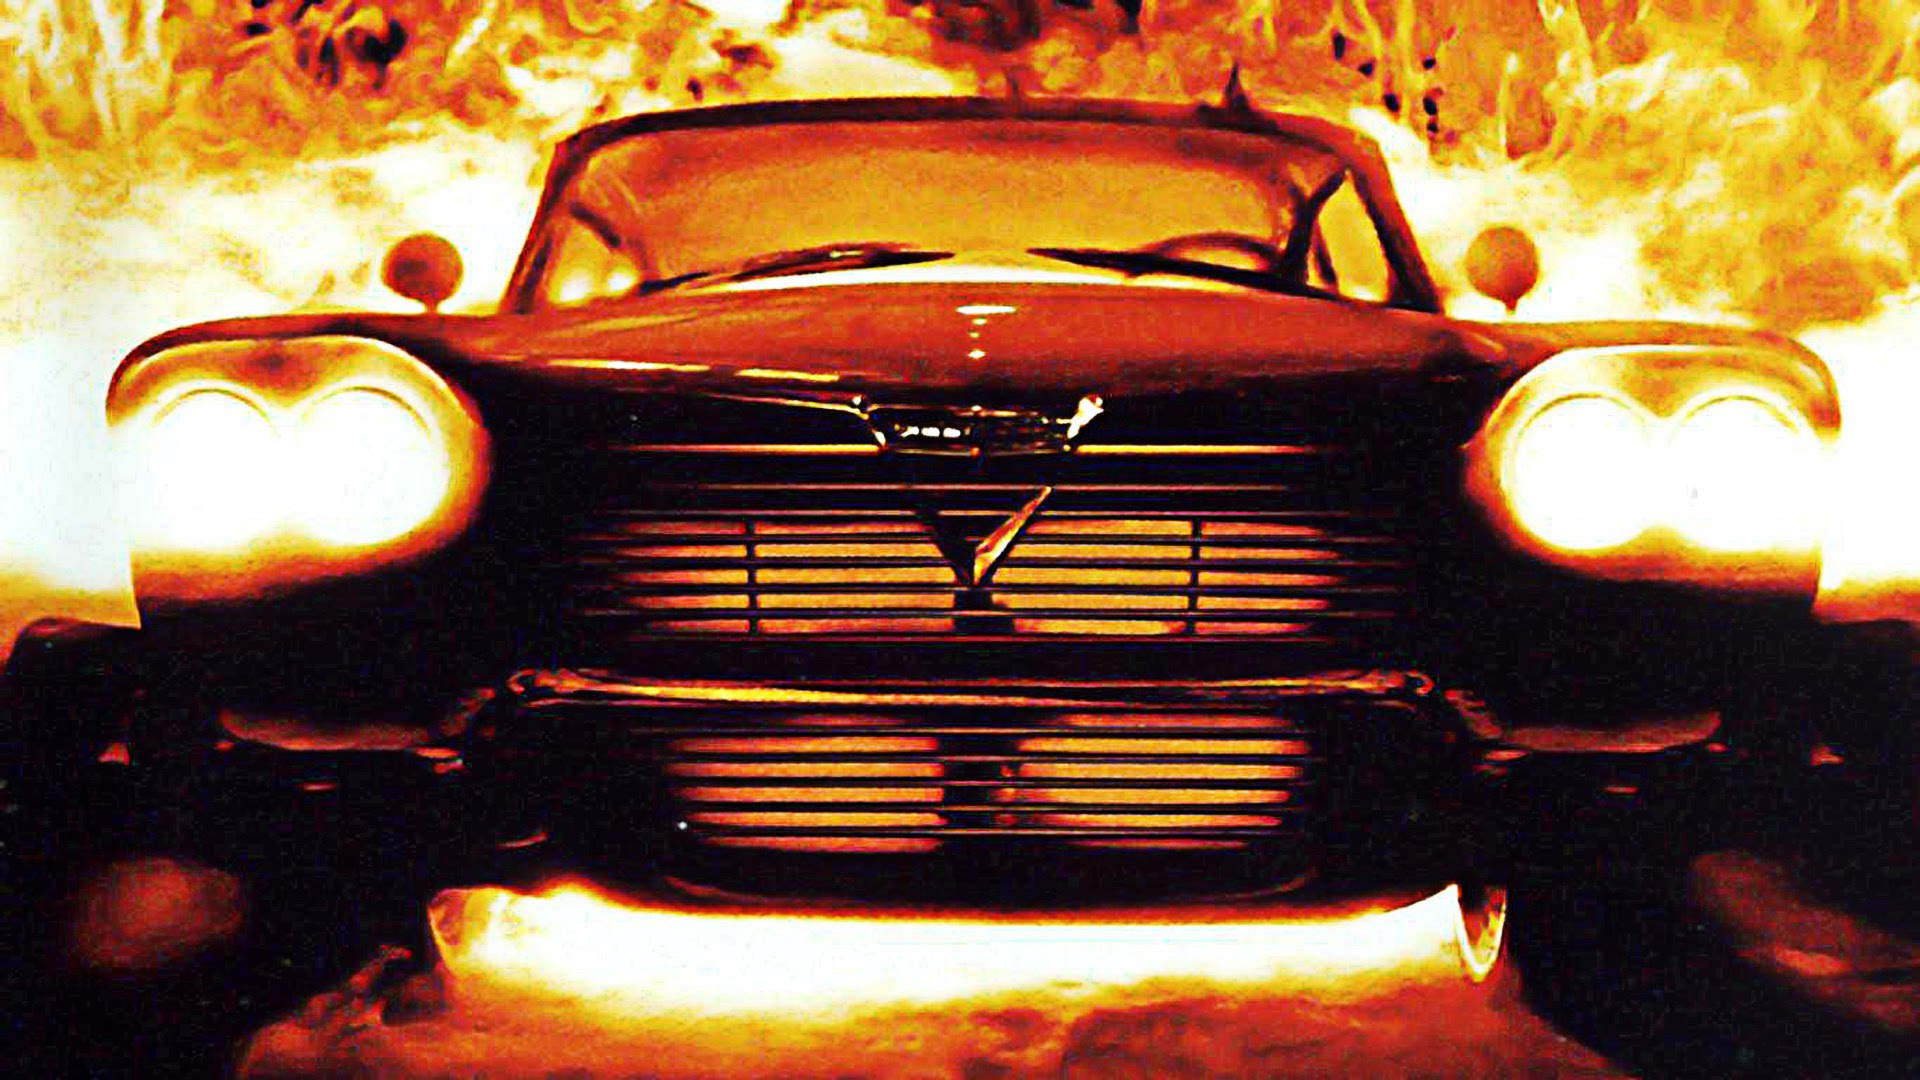 Top 5 Scariest Cars in Film History